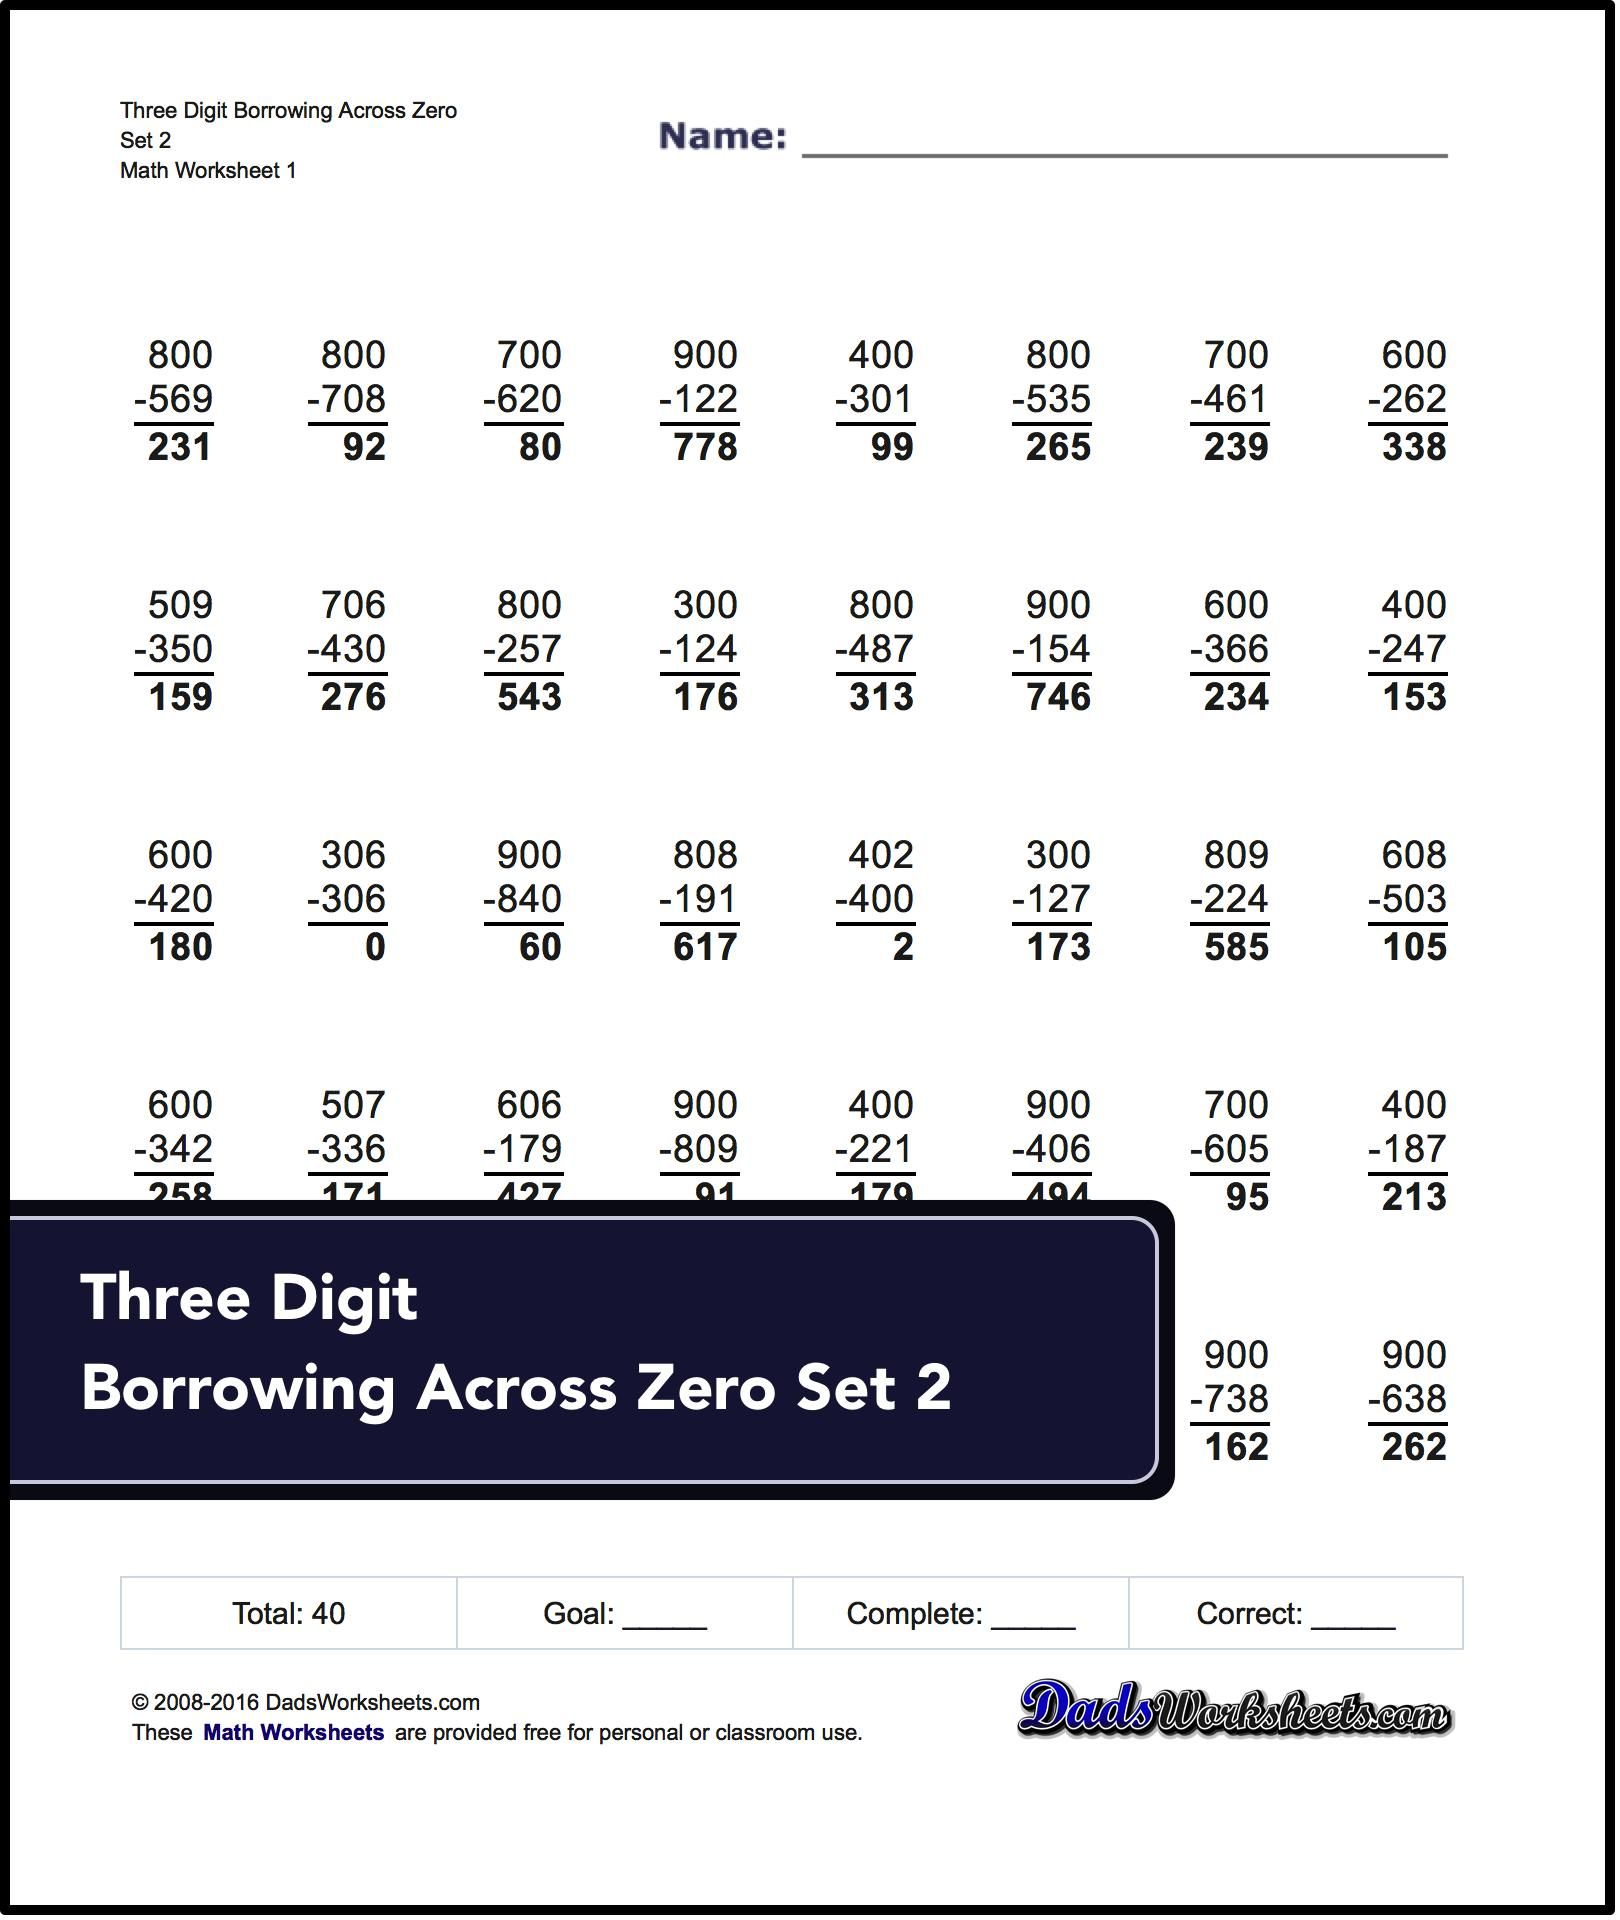 Subtraction Worksheets For Three Digit Borrowing Across